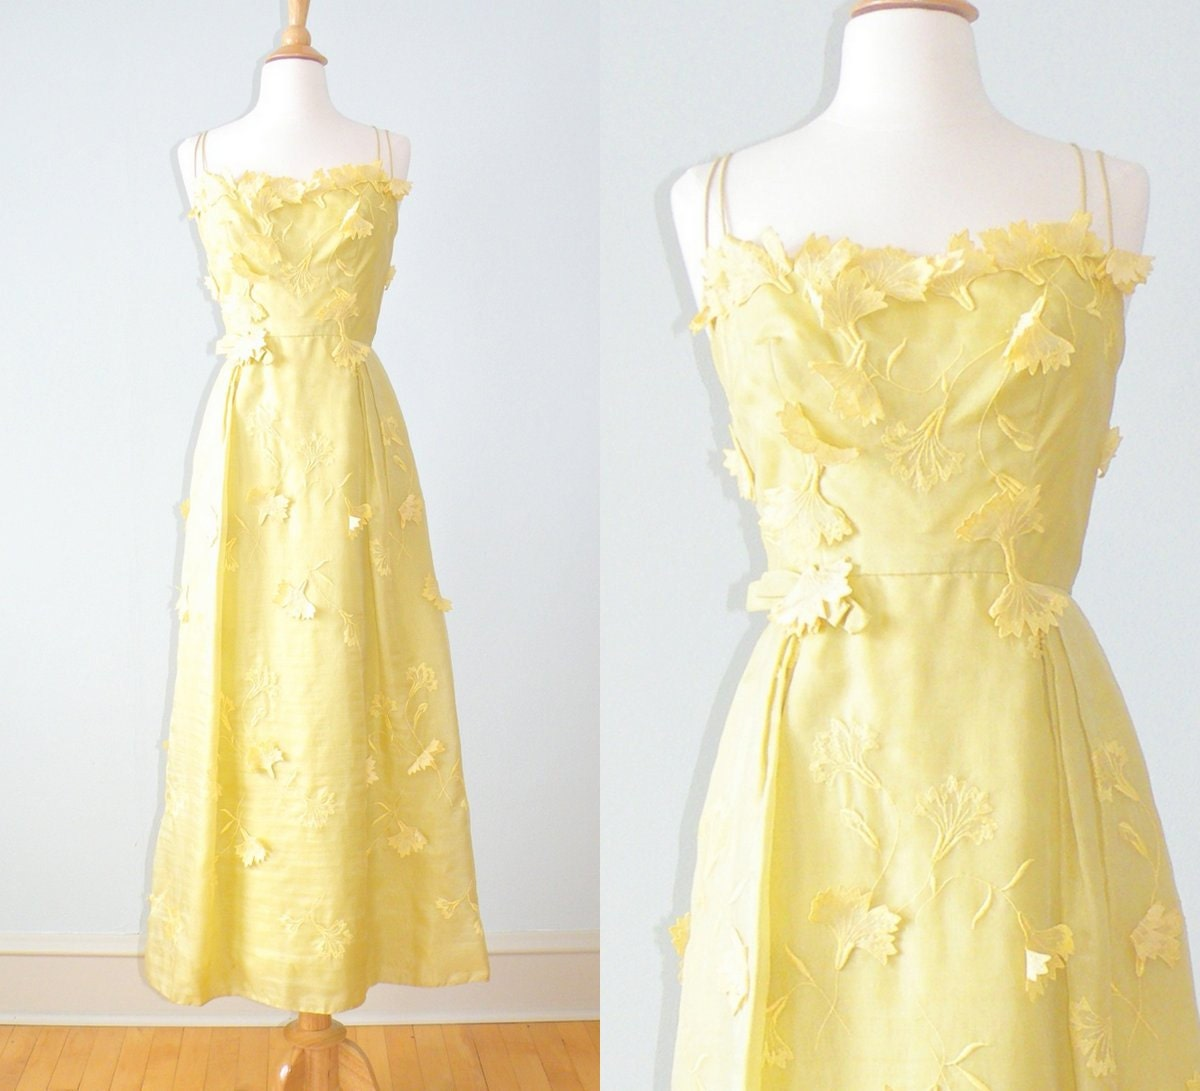 S helena barbieri embroidered yellow dress by